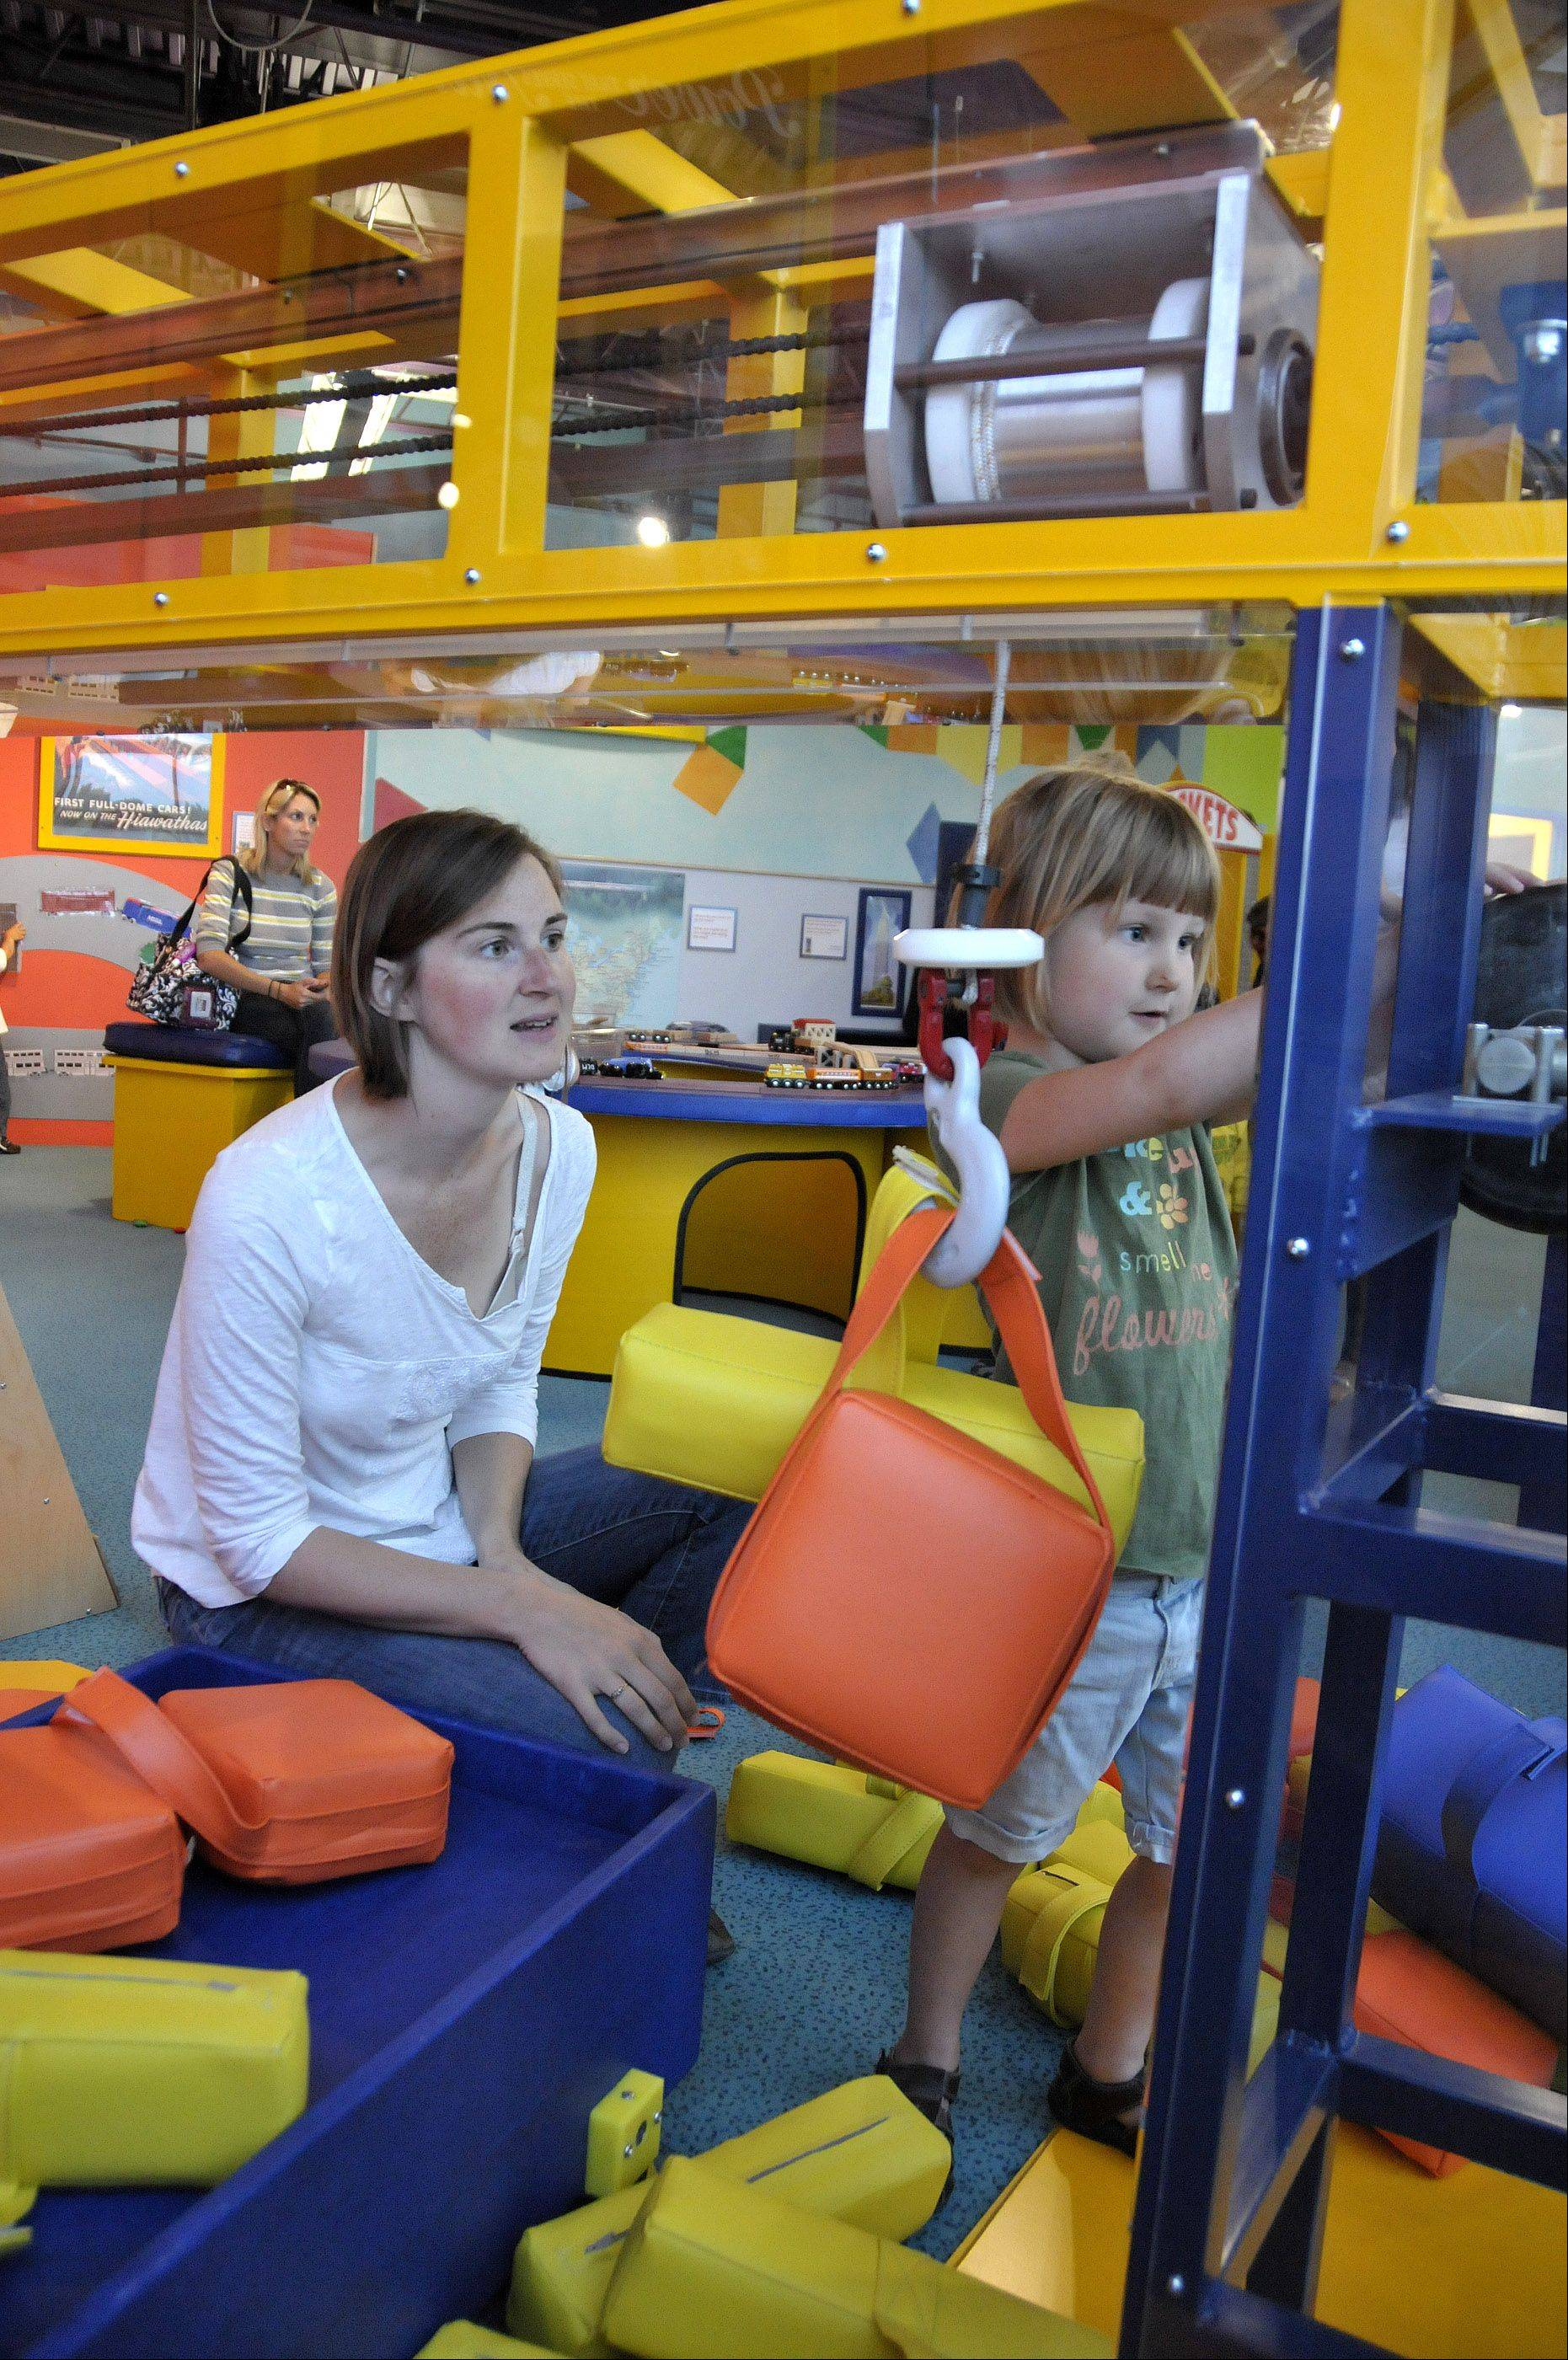 Patricia Mackie of Bolingbrook watches as her daughter, Delilah, works the crane at the DuPage Children's Museum to load luggage and freight.